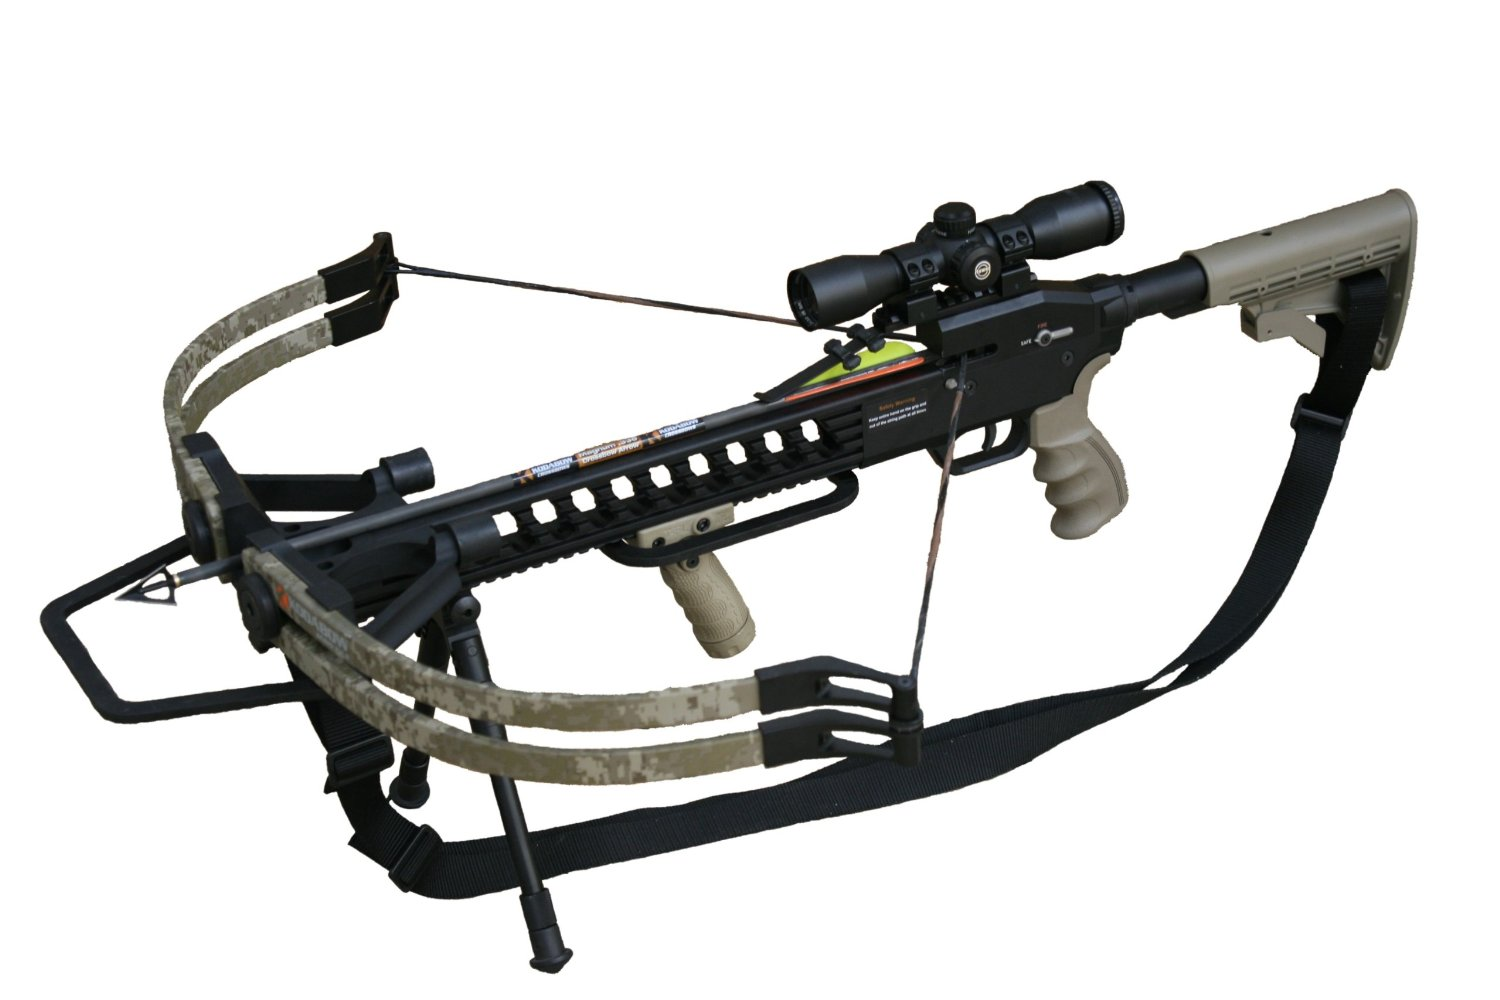 Kodabow Bravo Zulu Review - Recurve Crossbow